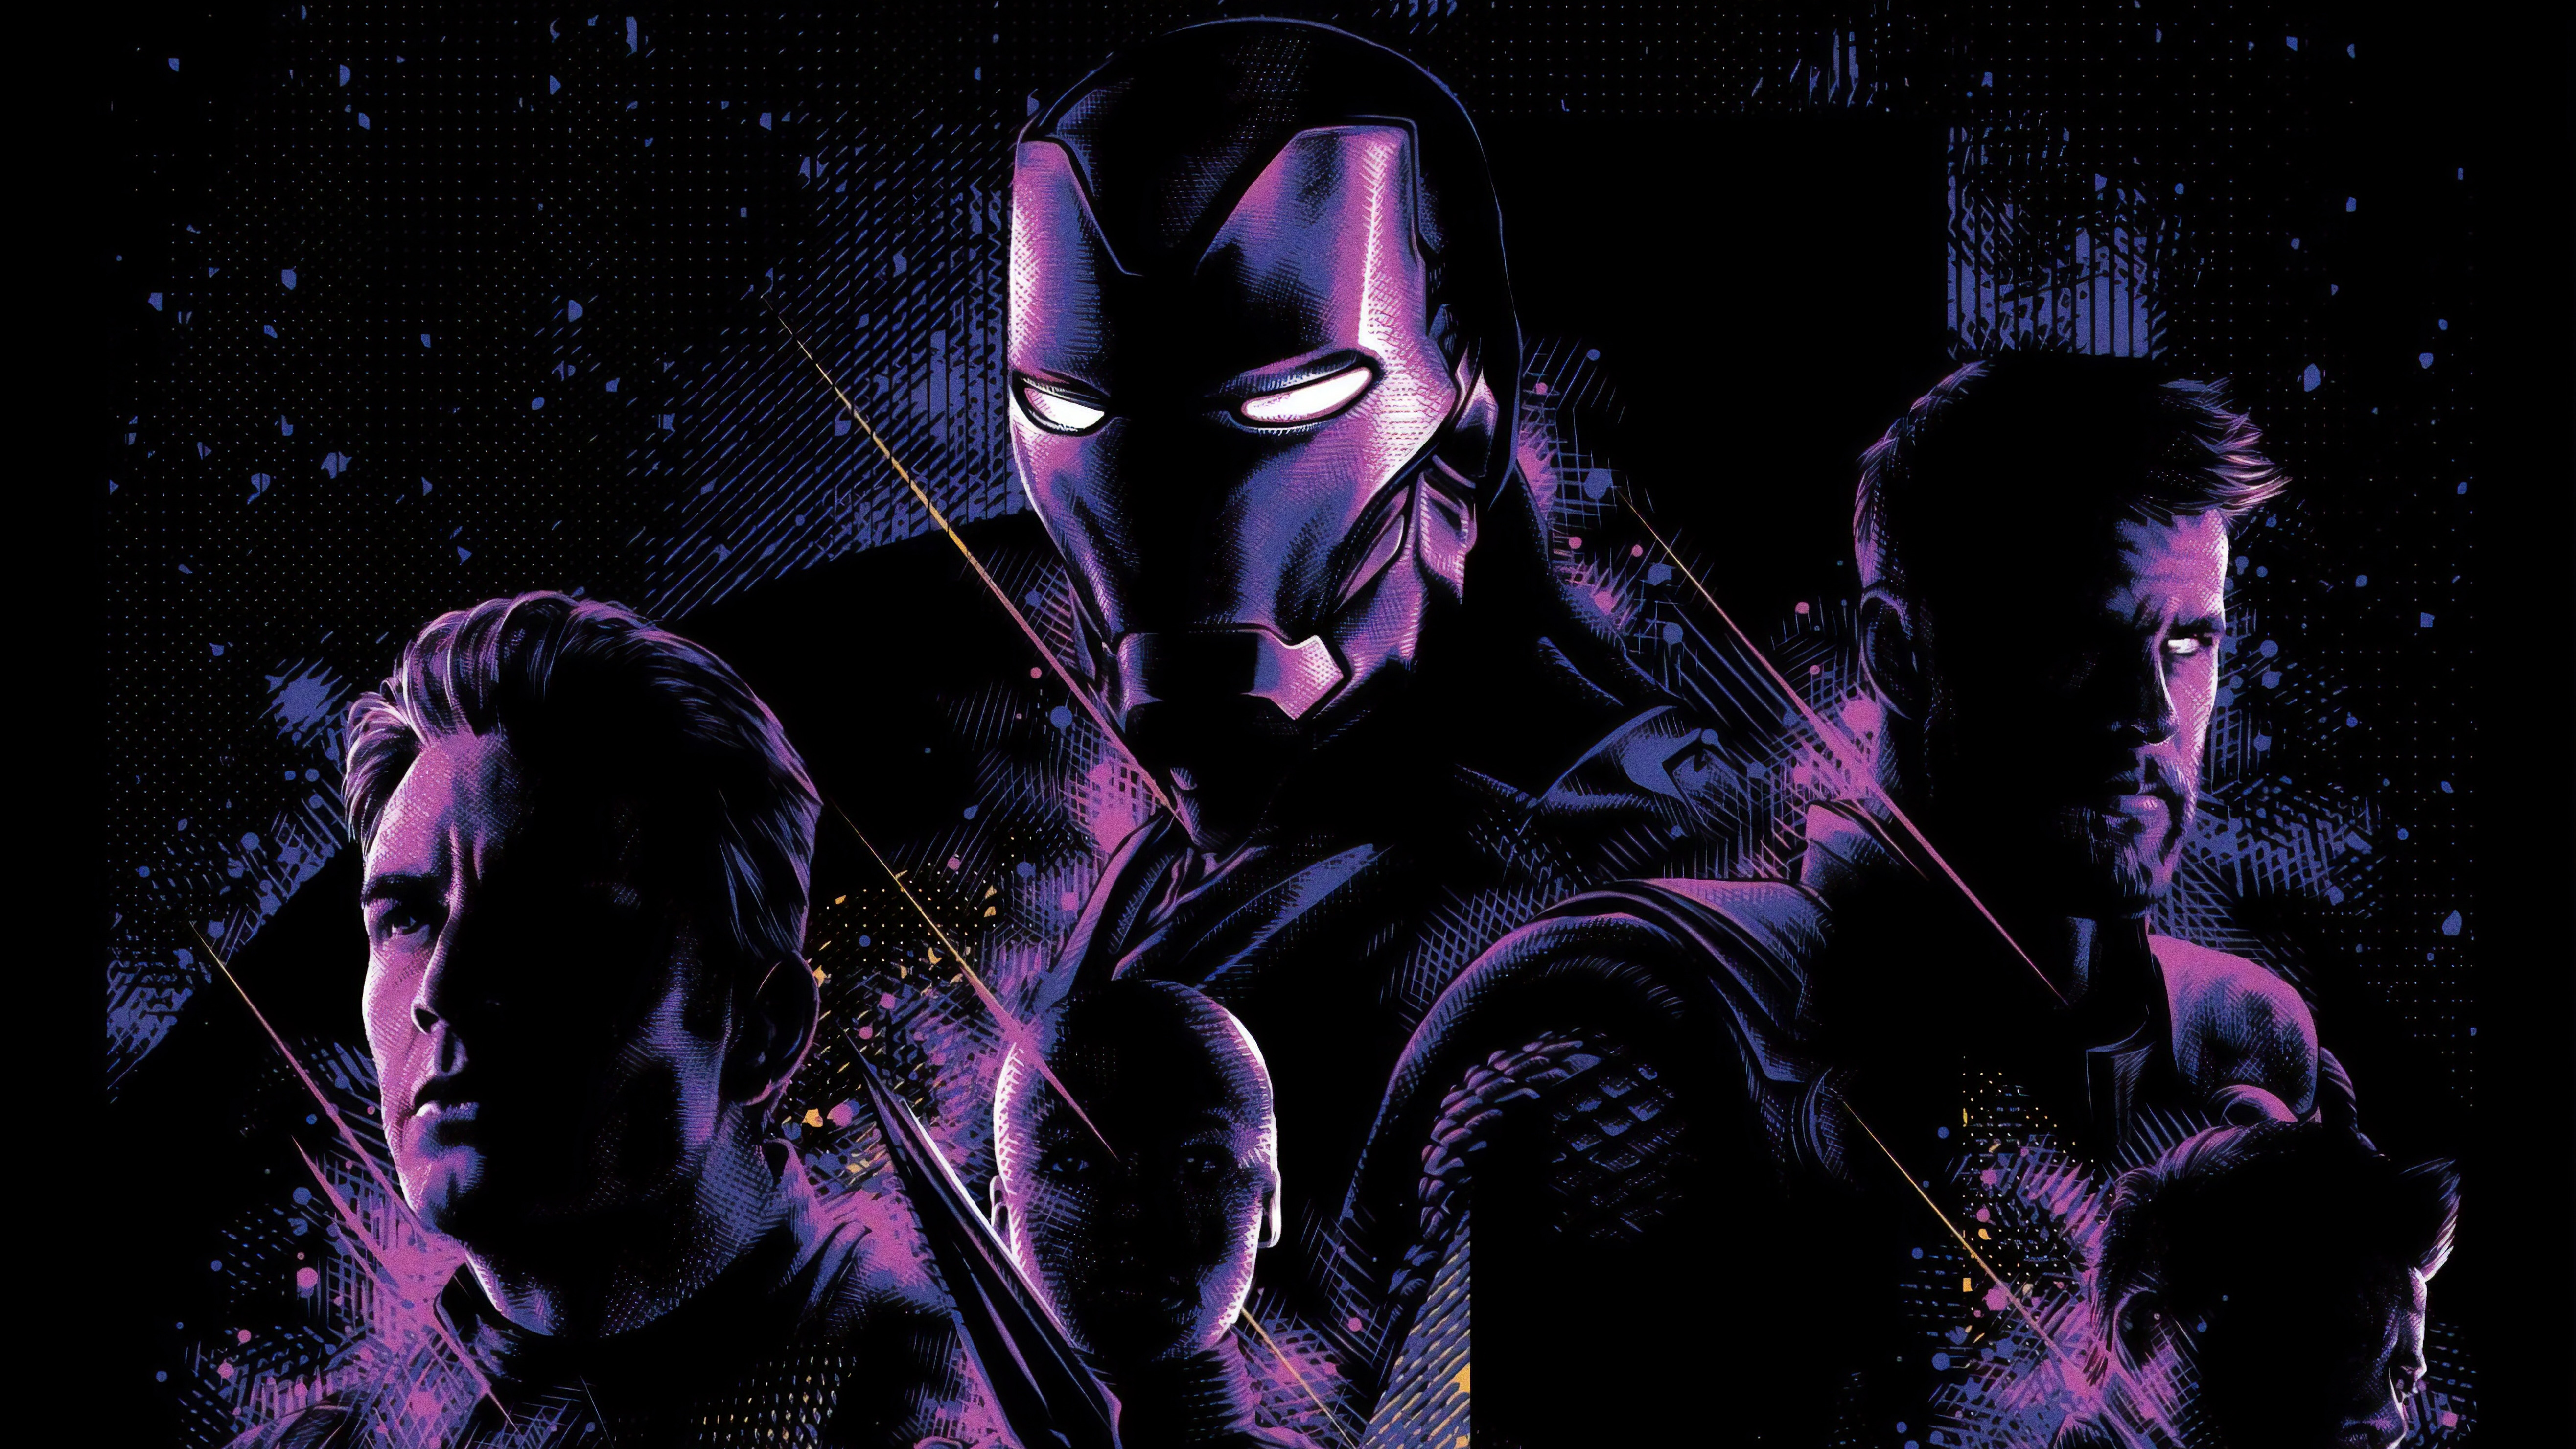 Avengers Endgame New Poster Hd Movies 4k Wallpapers Images